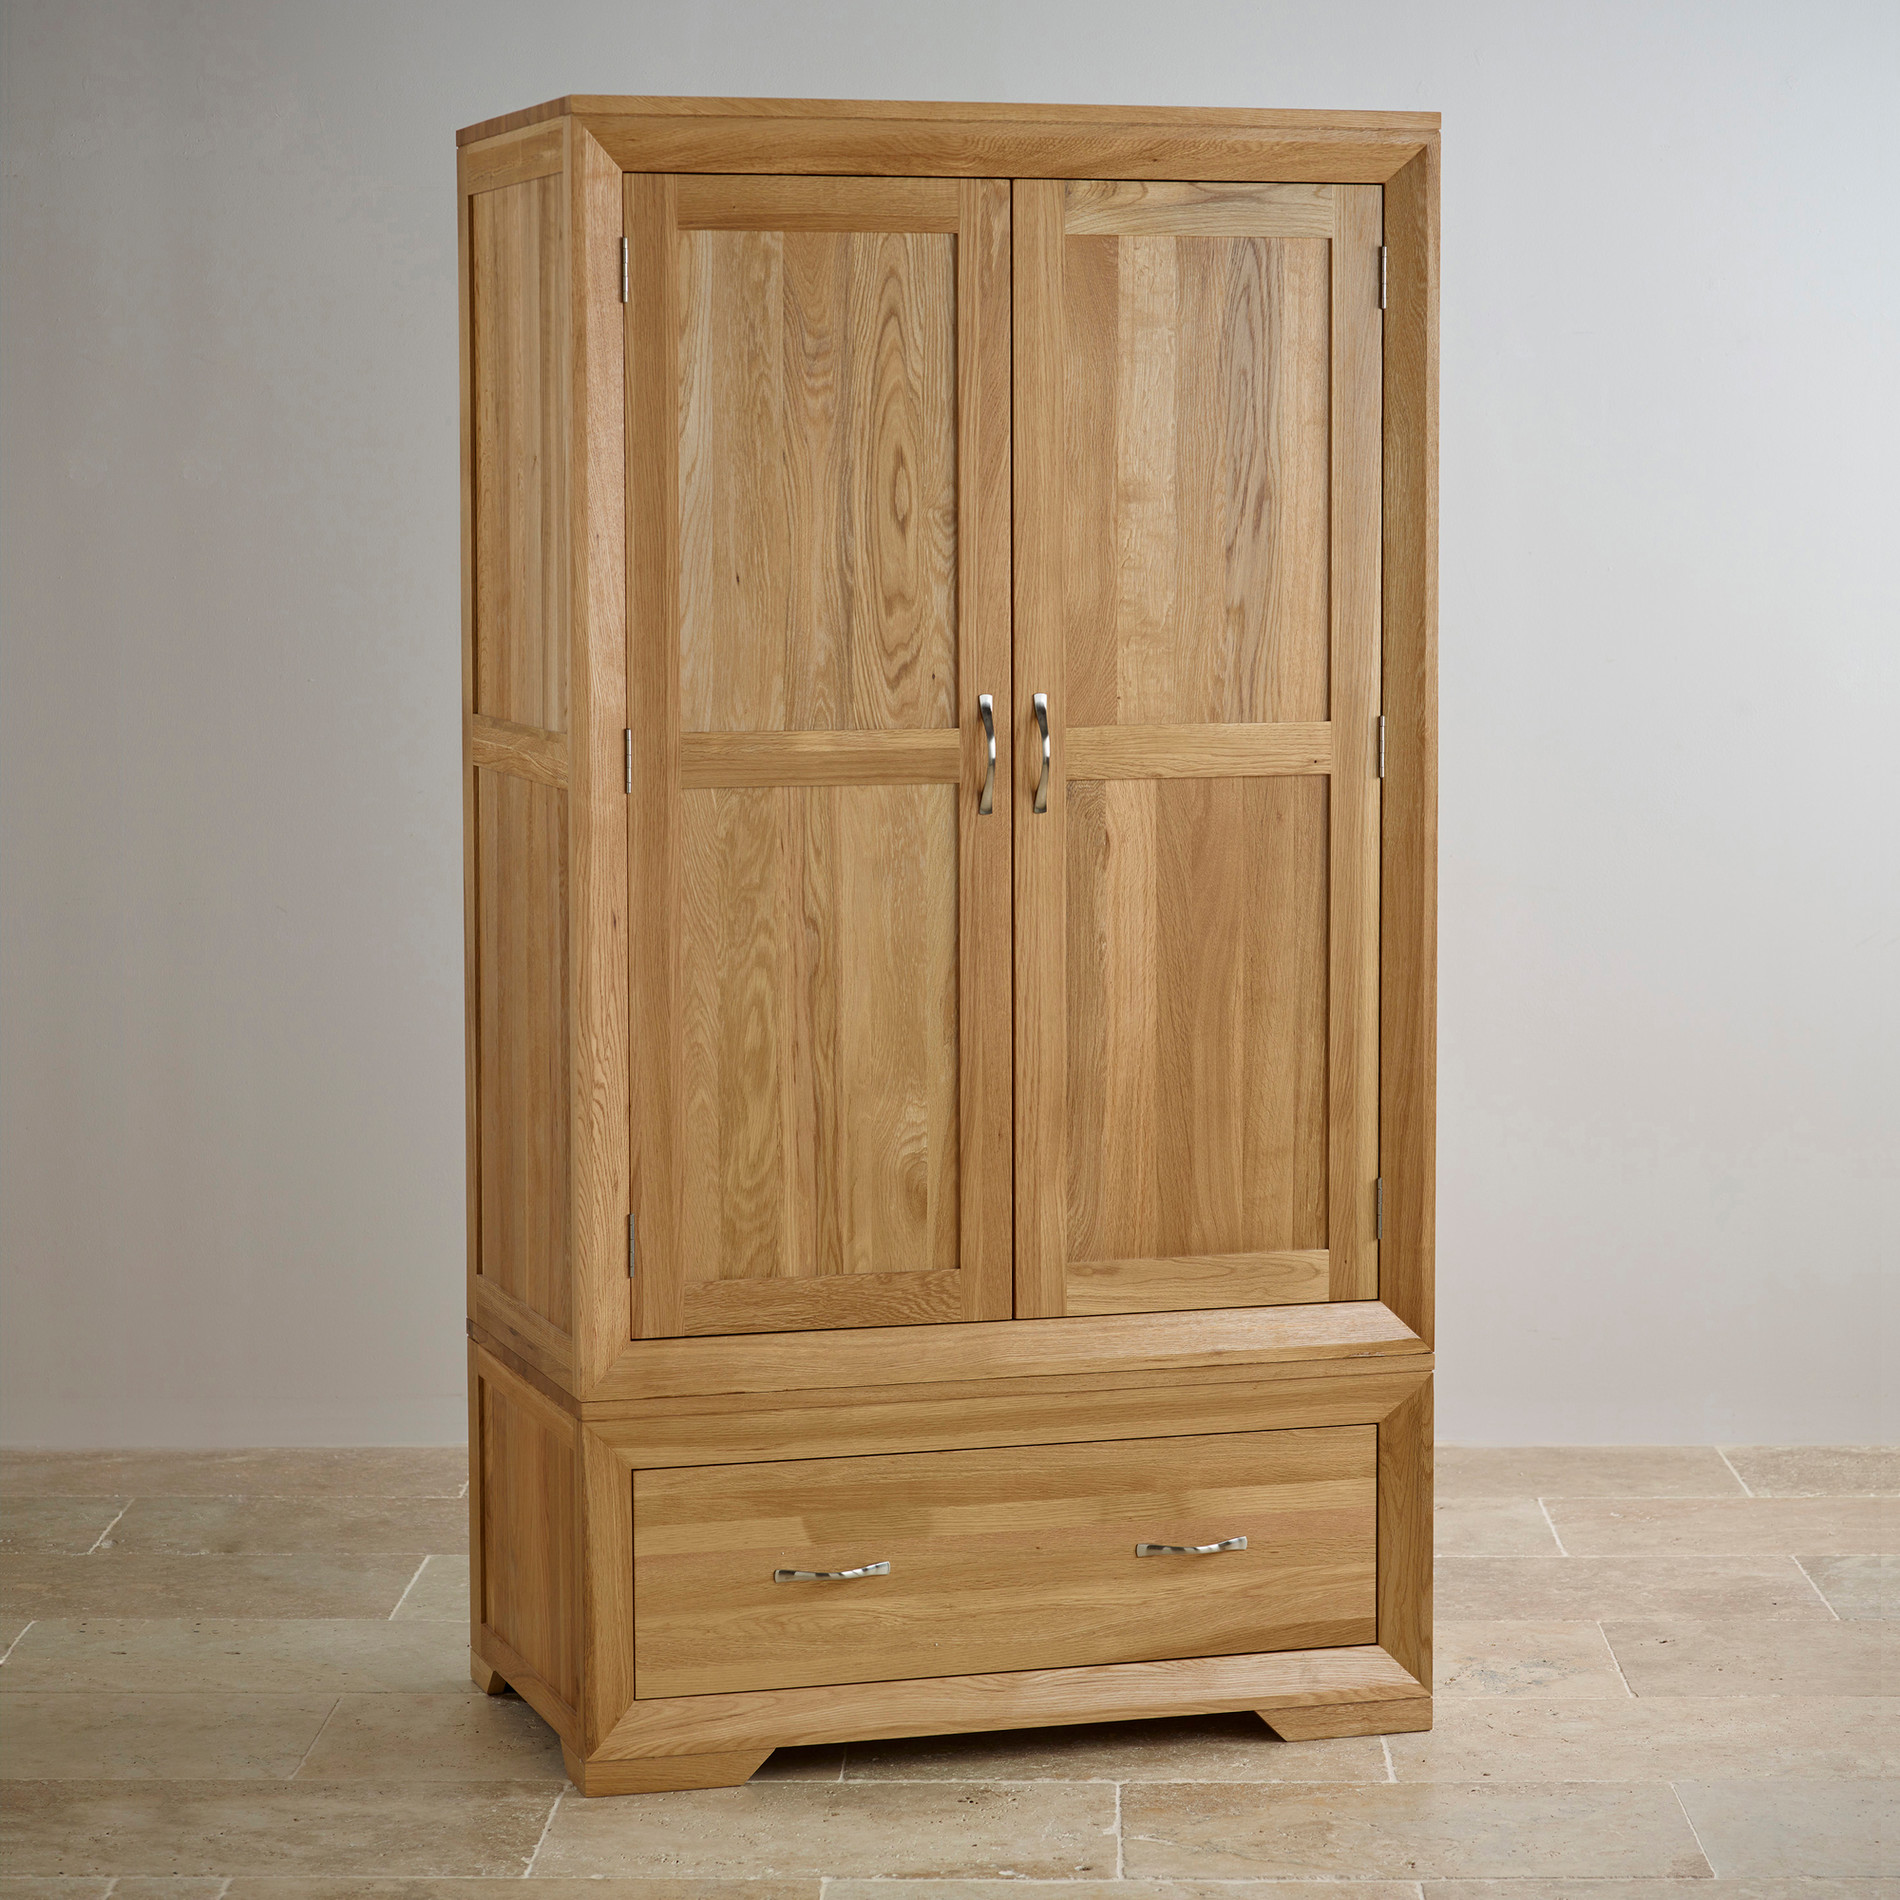 Bevel natural solid oak wardrobe bedroom furniture for Solid oak furniture